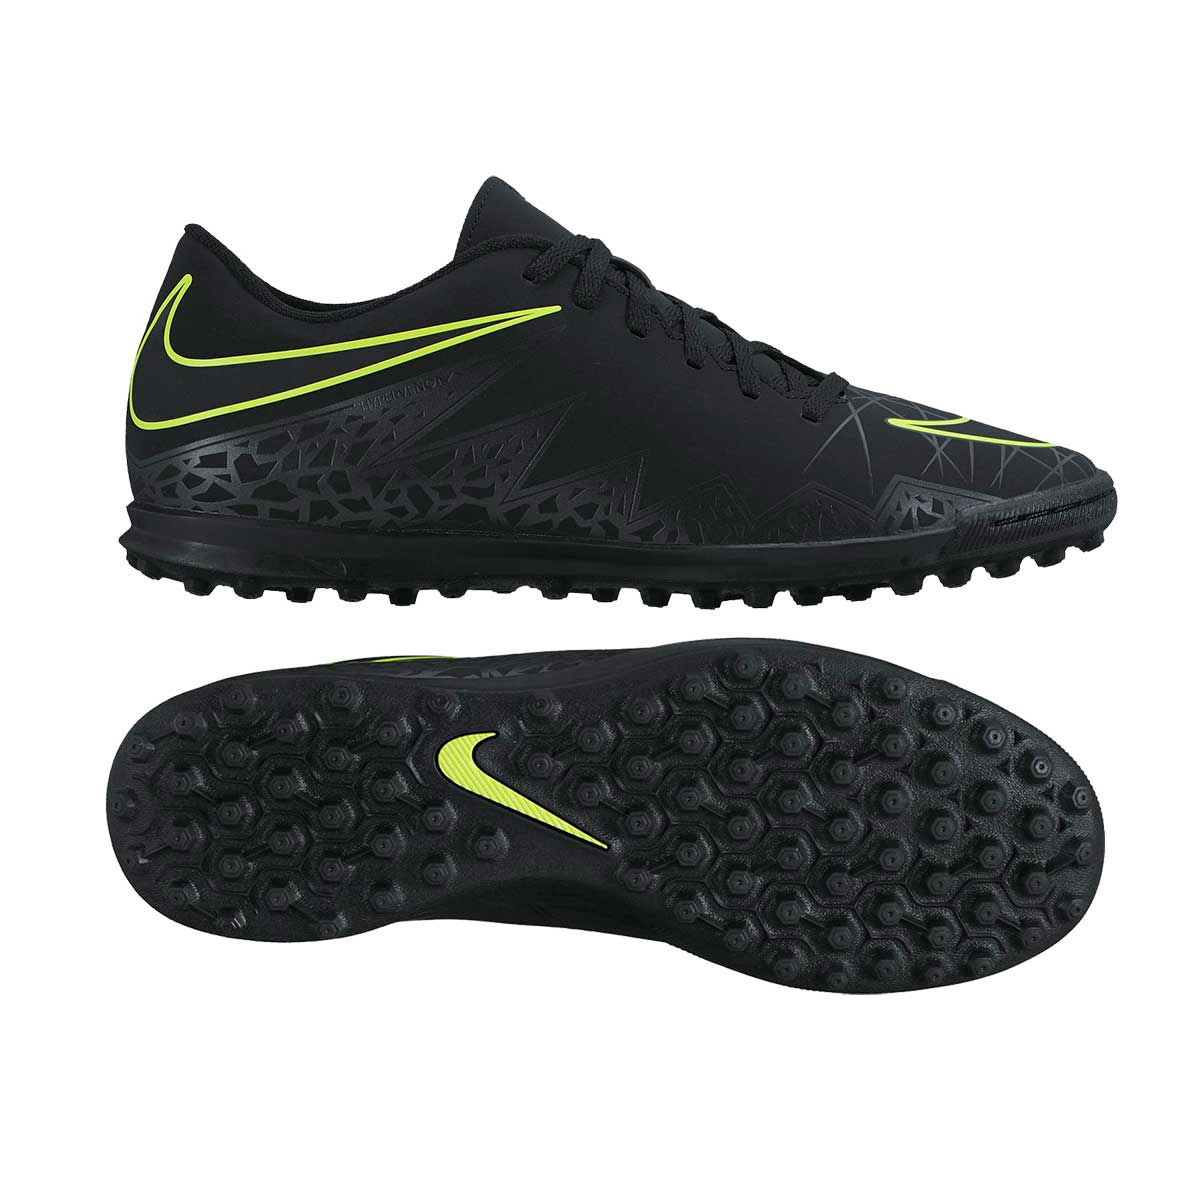 cfa8ea041b0 Nike Football Shoes   Buy Nike Sneakers   Shoes